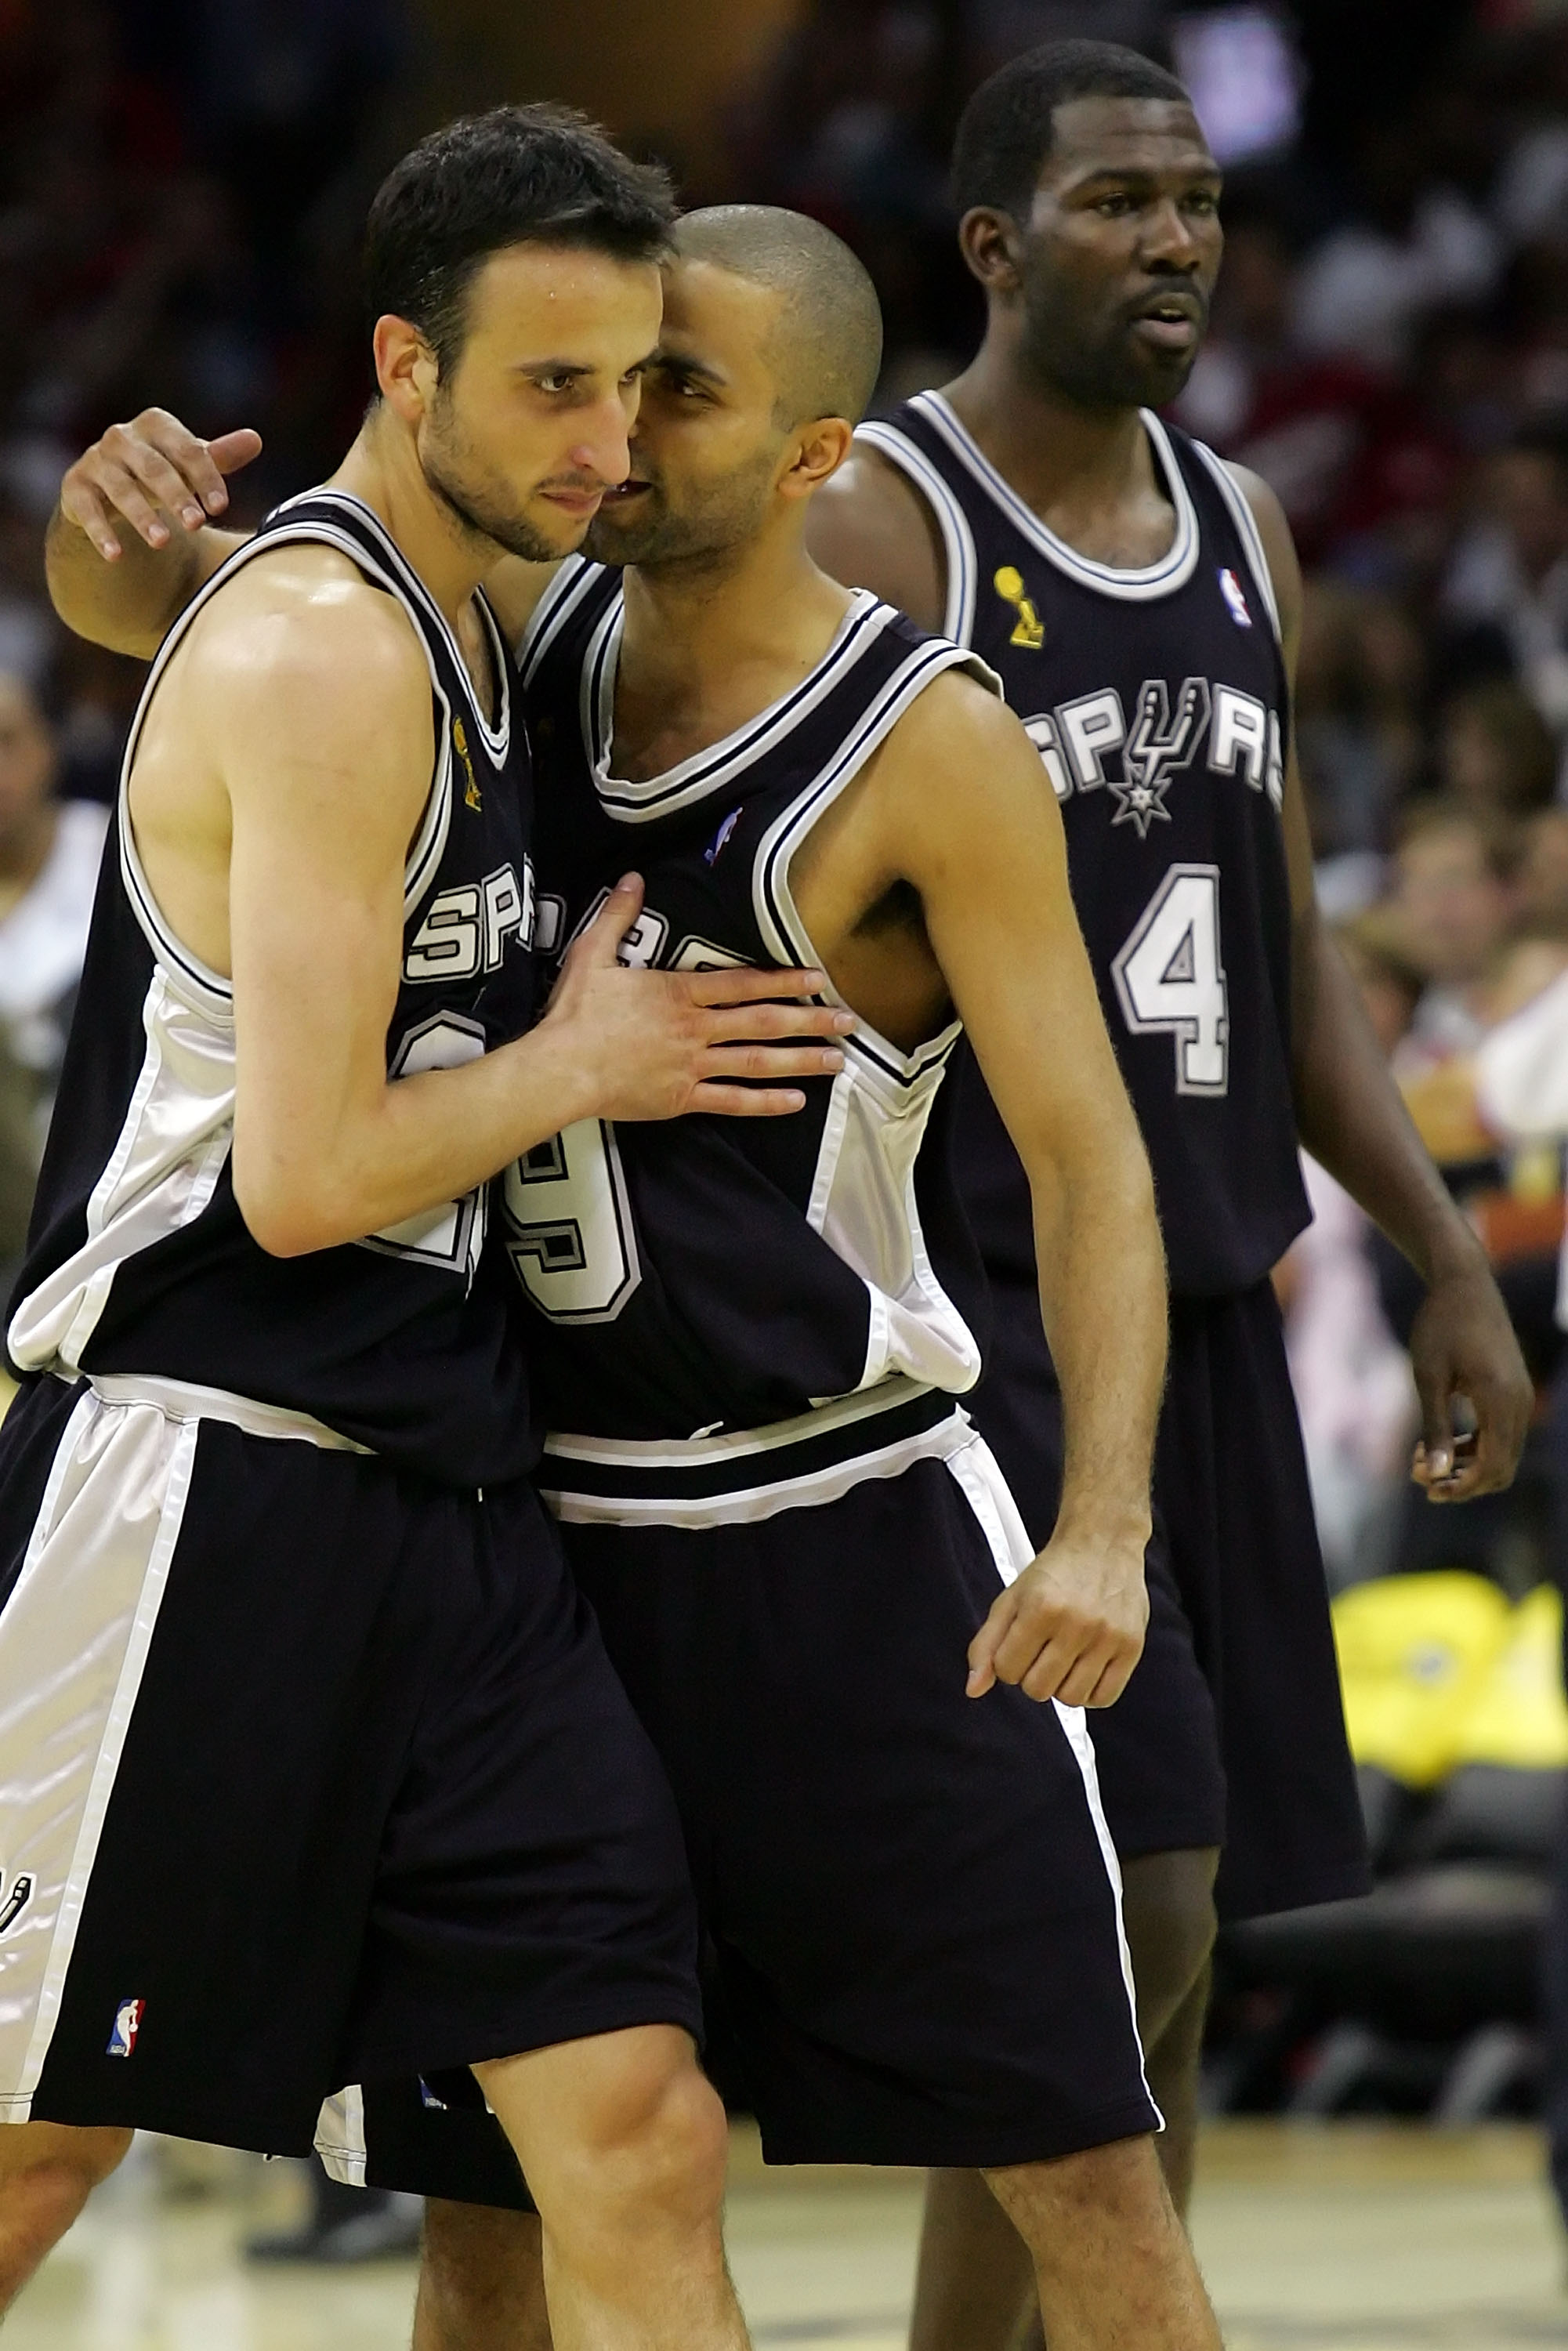 CLEVELAND - JUNE 14:  Tony Parker #9, Manu Ginobili #20 and Michael Finley #4 of the San Antonio Spurs react after winning the NBA Championship after Game Four of the NBA Finals against the Cleveland Cavaliers on June 14, 2007 at the Quicken Loans Arena i